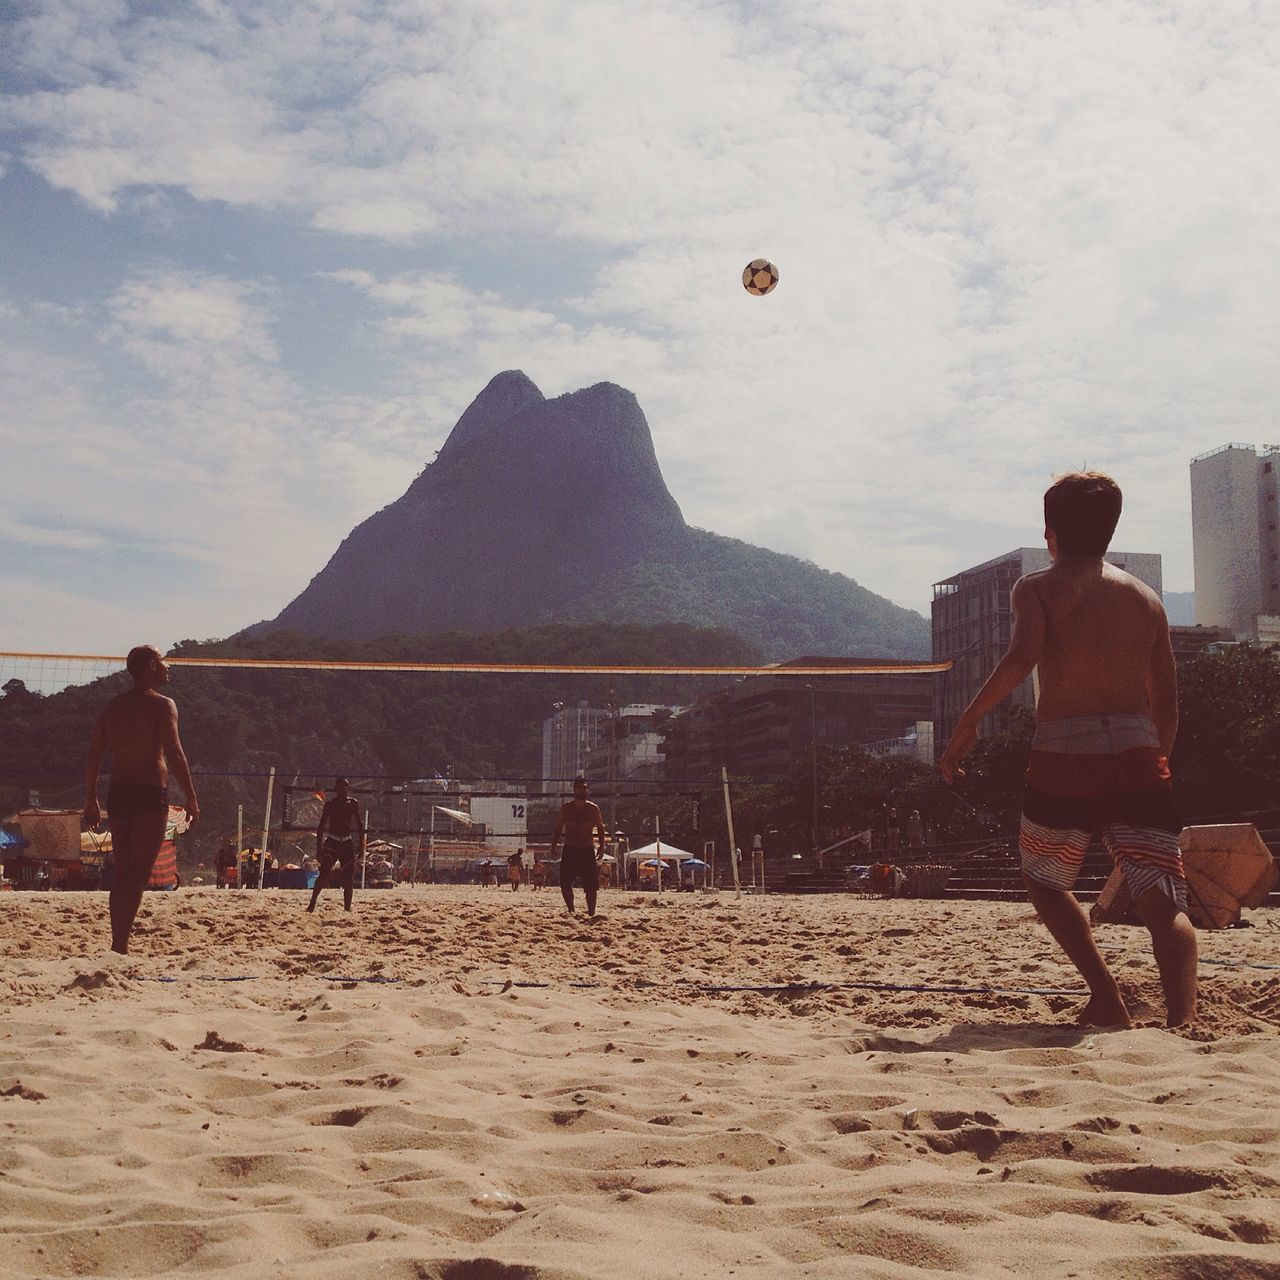 Beach Soccervolley Adapted To The City Adult Adults Only Beach Beauty In Nature Brazil Cloud - Sky Day Leisure Activity Lifestyles Men Mountain Nature One Man Only One Person Only Men Outdoors People Real People Rio De Janeiro Sand Scenics Sky Sport Young Adult